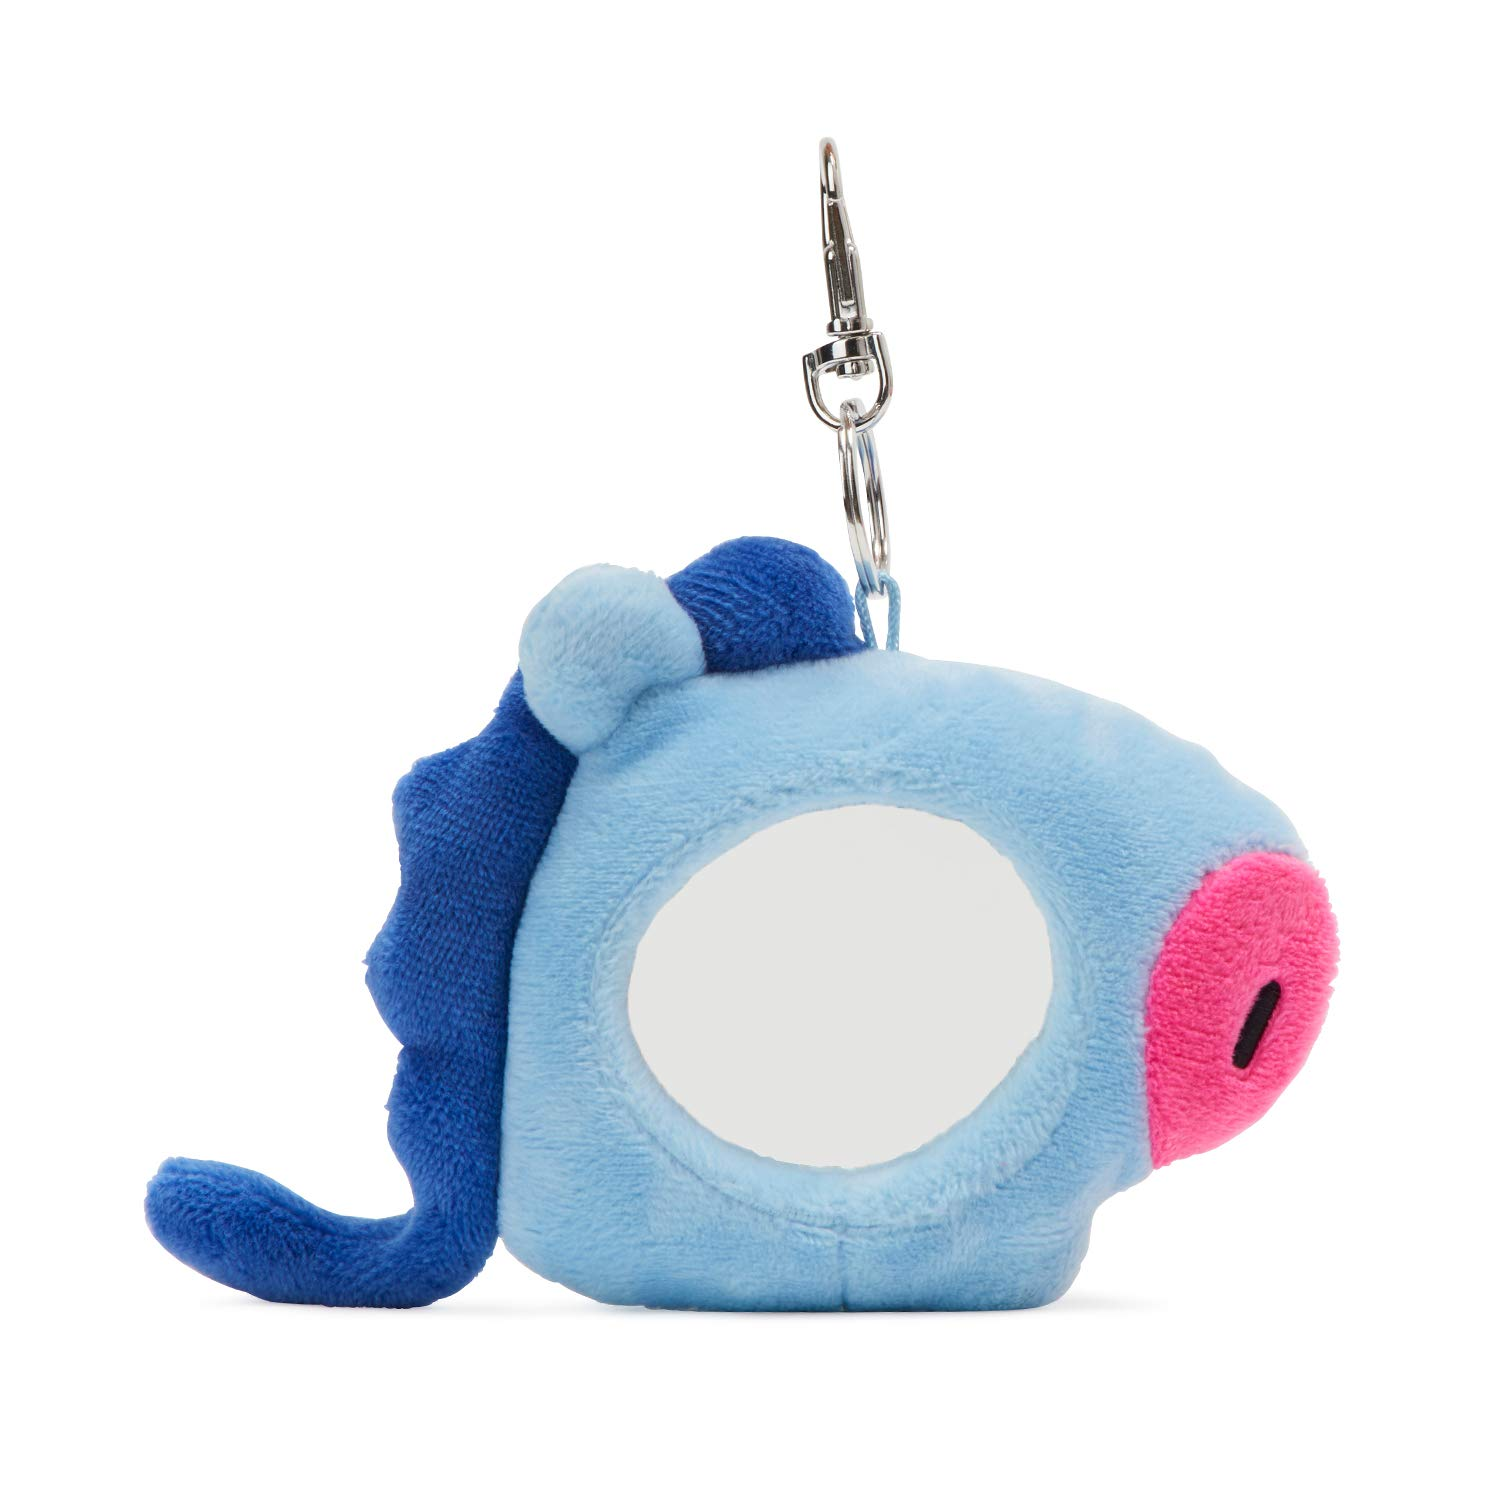 BT21 Official Merchandise by Line Friends - MANG Character Plush Doll Face Keychain Ring with Mirror Handbag Accessories